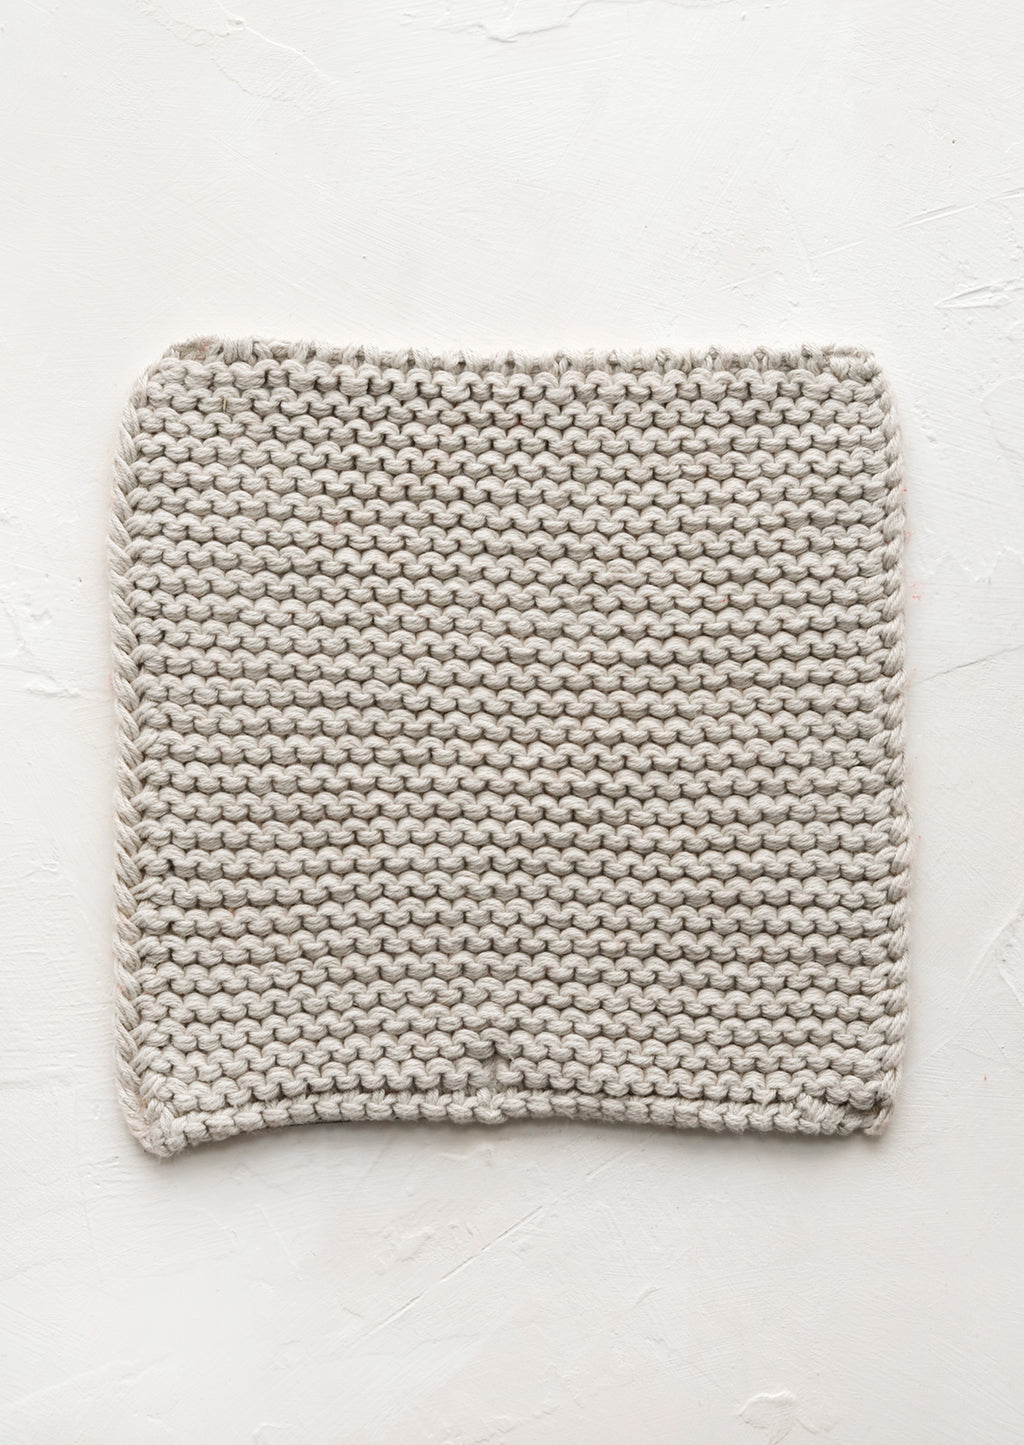 Oyster: A square, chunky knit cotton potholder in oyster grey.